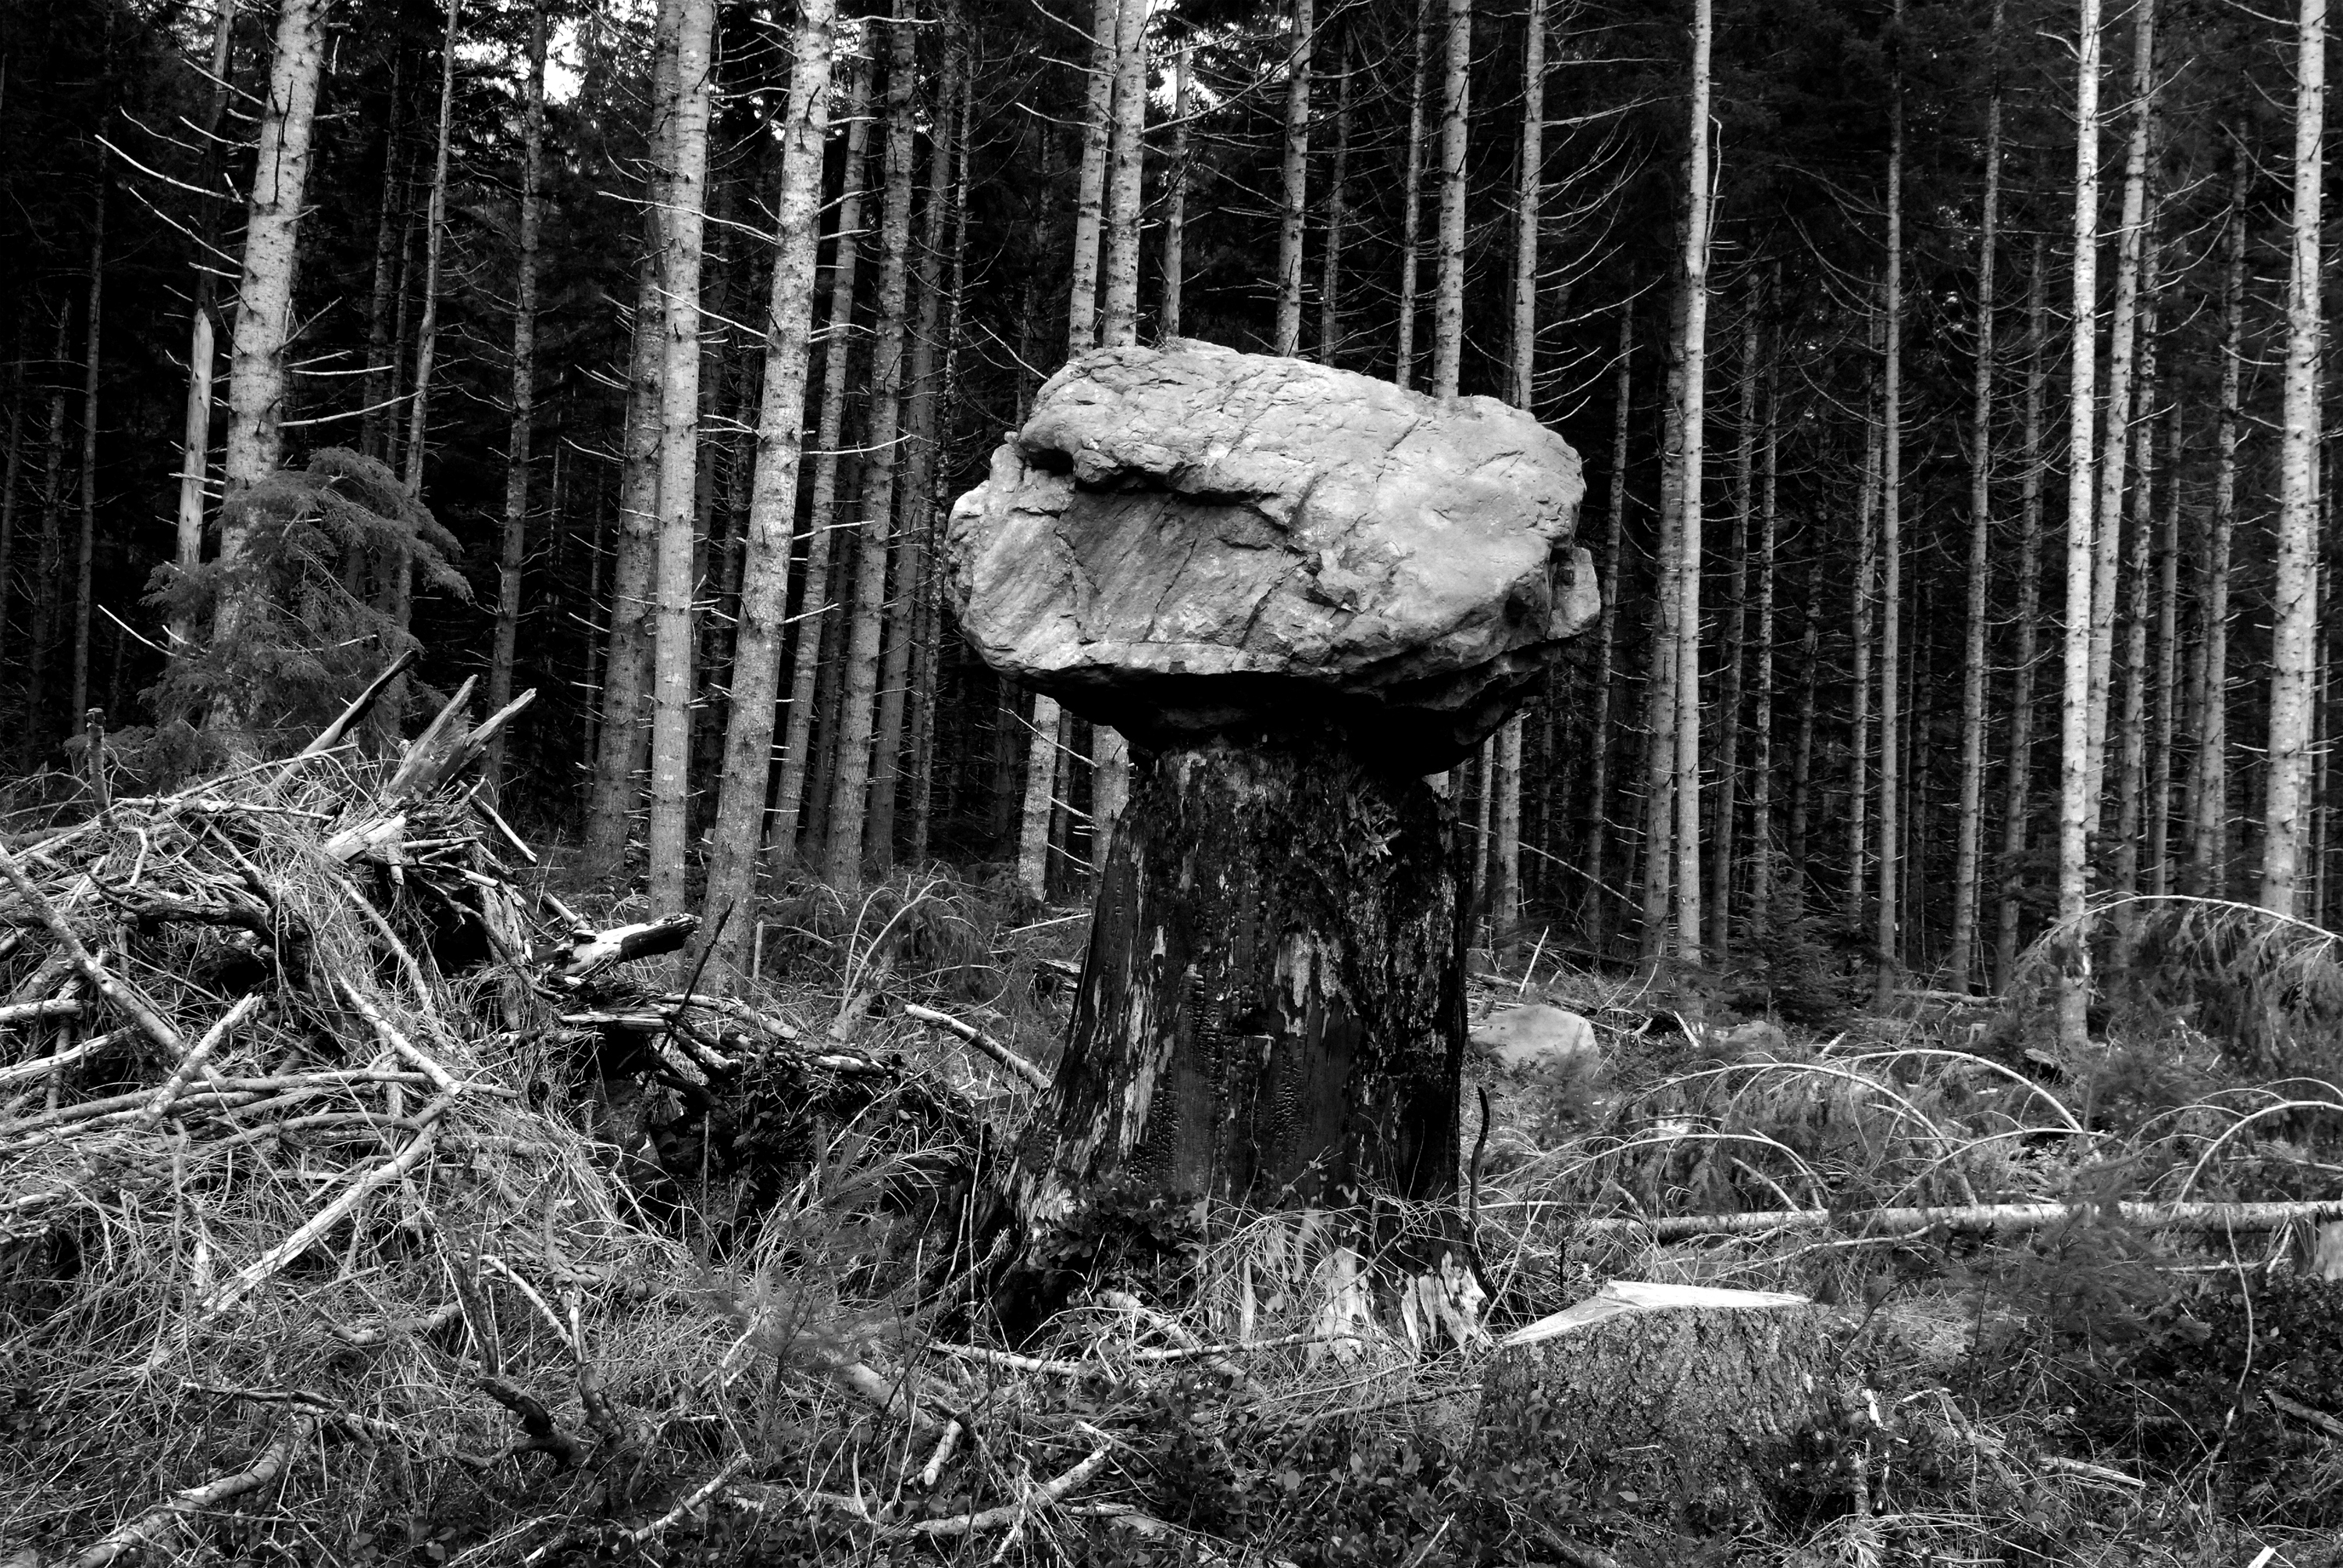 A tree stump with a large rock on top of it surrounded by tree branches and needleless tree trunks